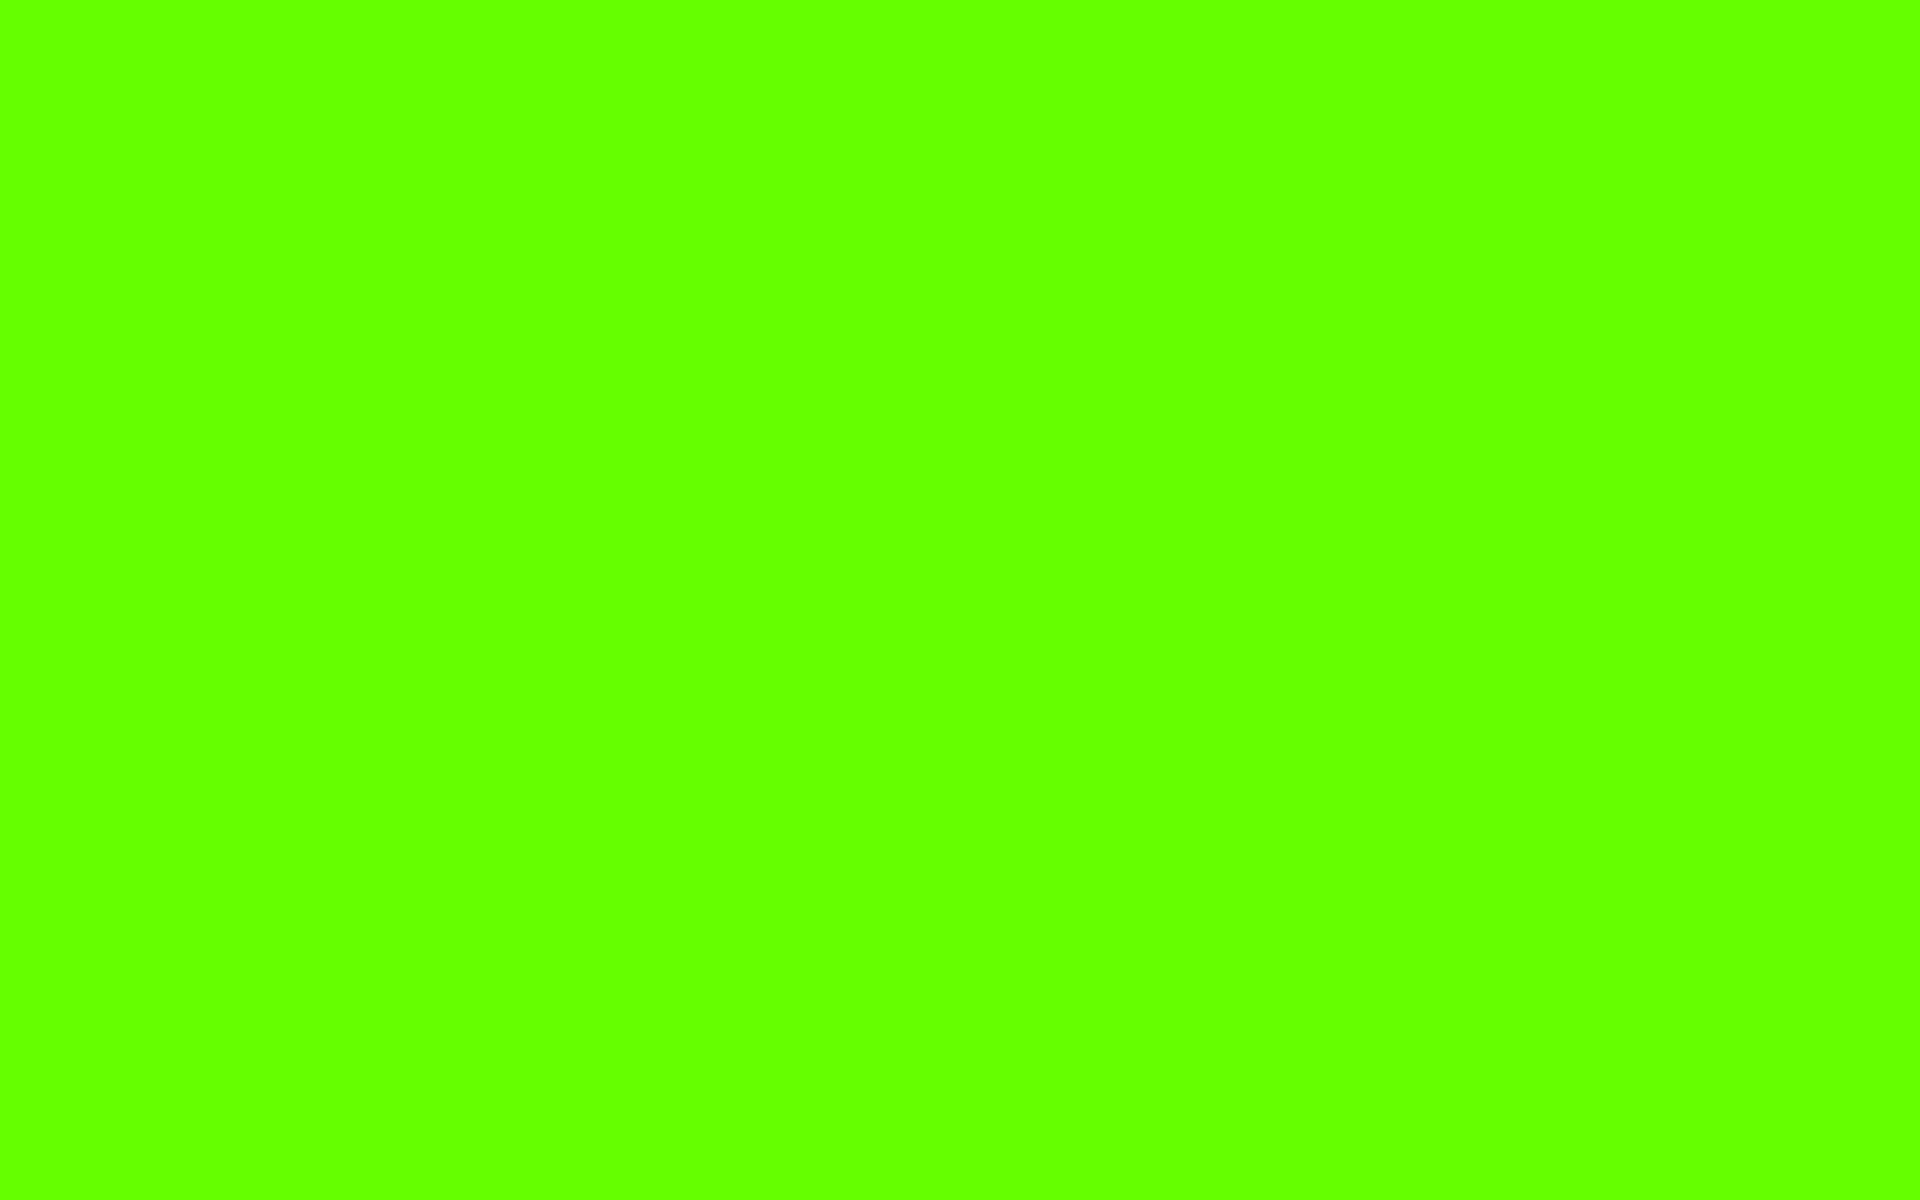 1920x1200 Bright Green Solid Color Background